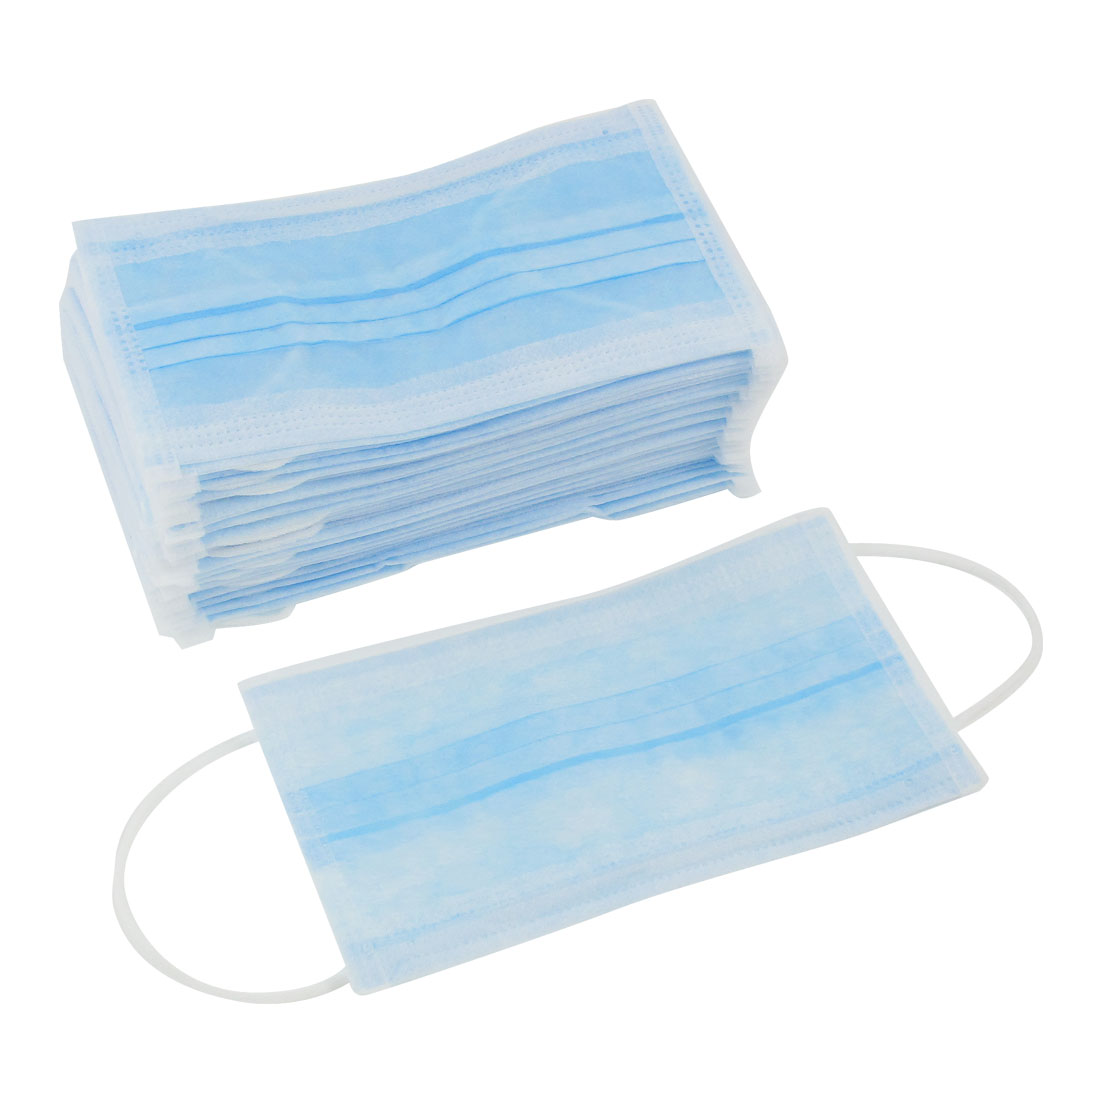 45 Pcs Blue Mouth Face Protective Disposable Masks